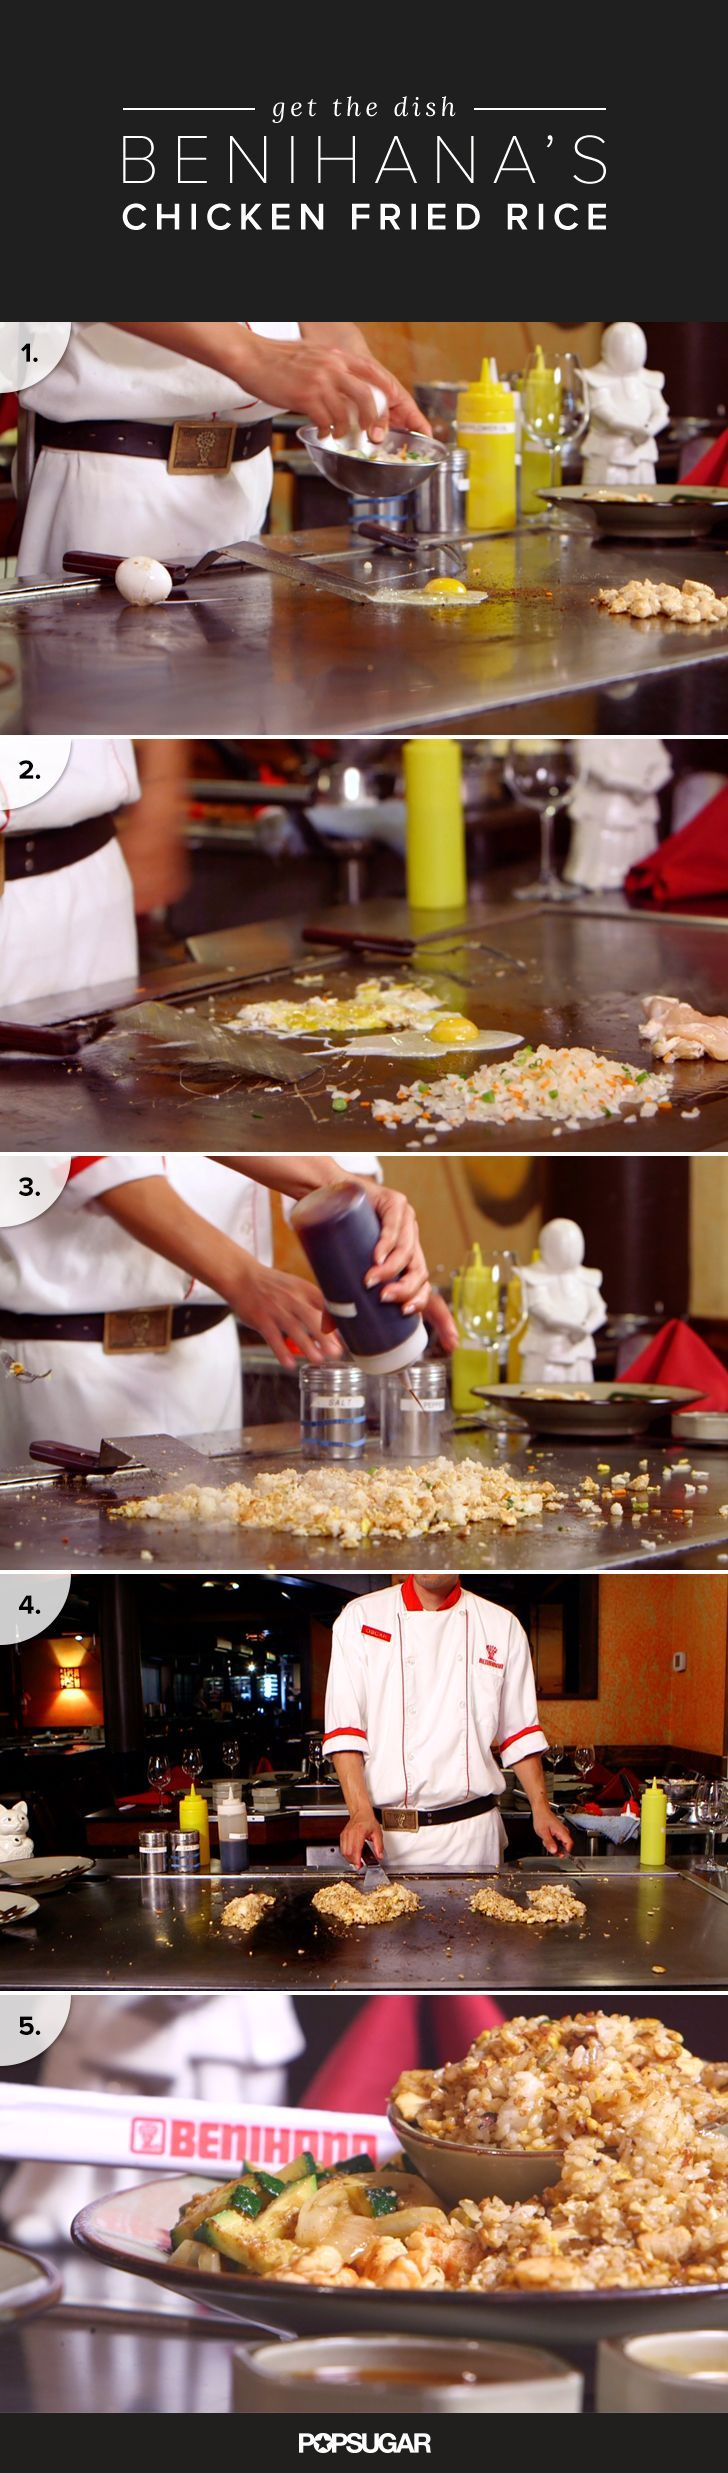 Benihana's Fried Rice Recipe | Video | POPSUGAR Food